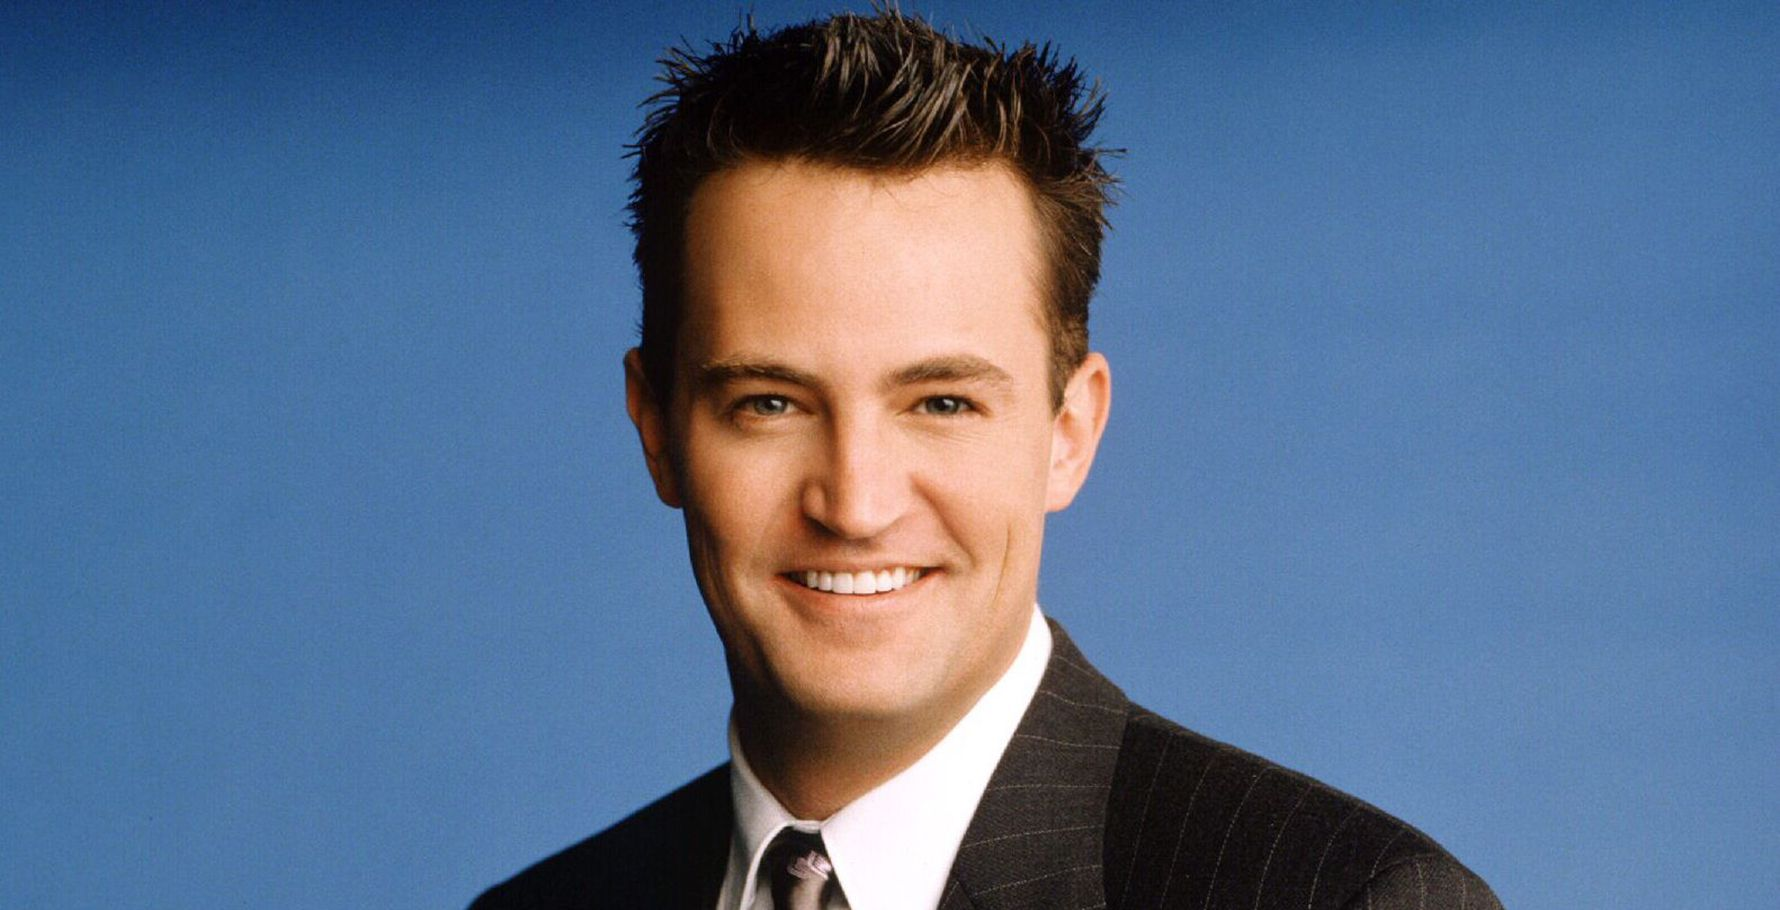 Friends: Chandler Bing's 10 Best One-Liners